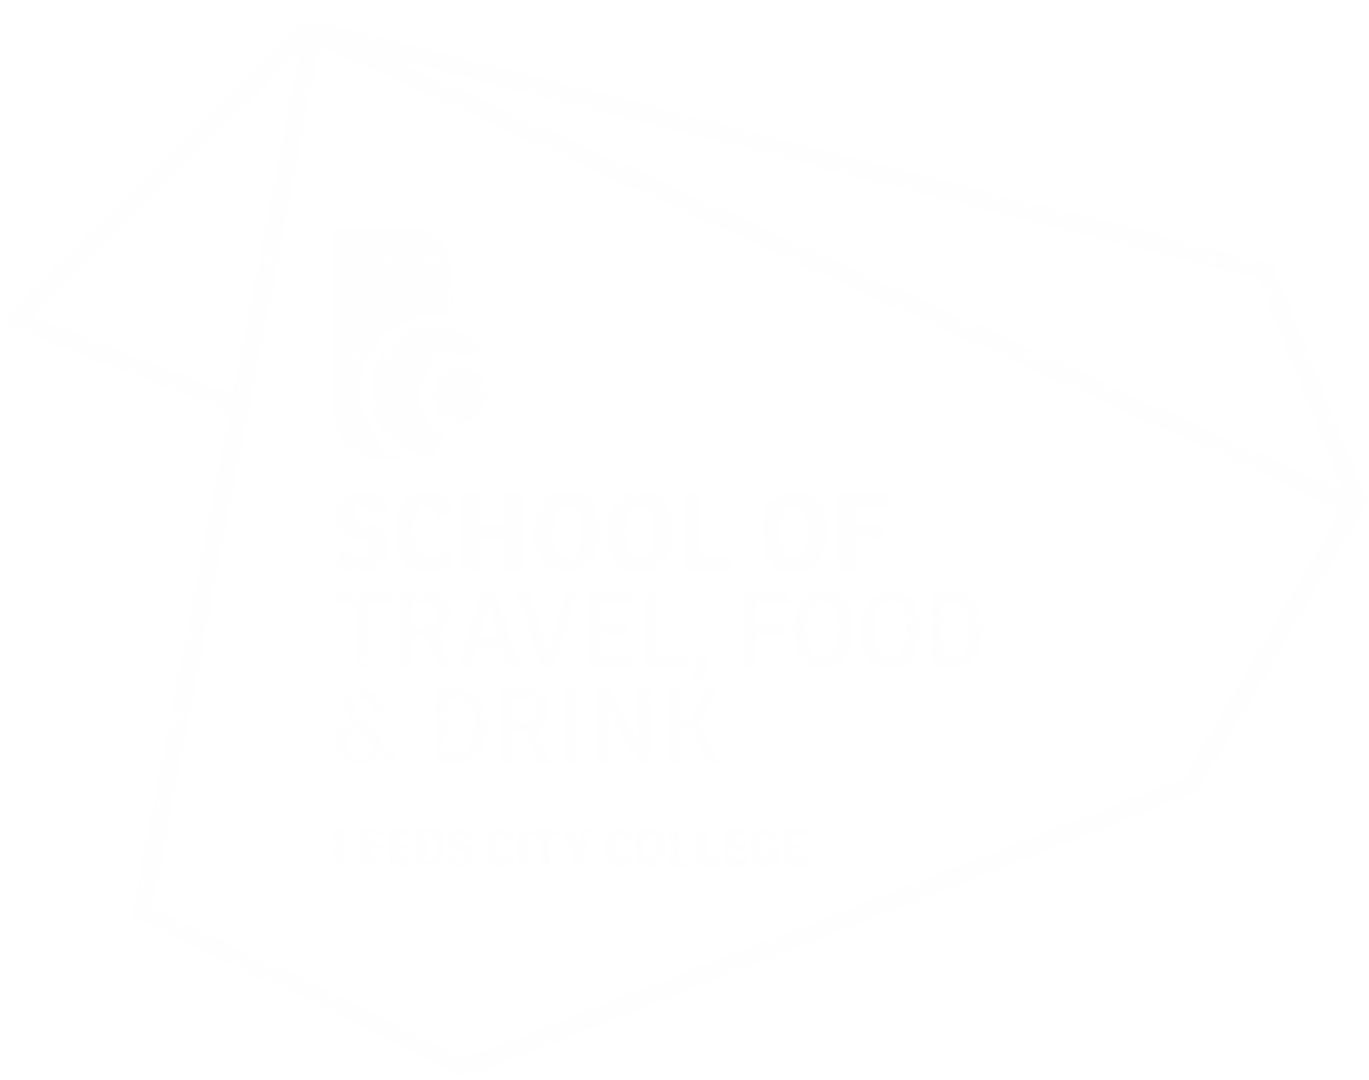 School of Travel, Food & Drink